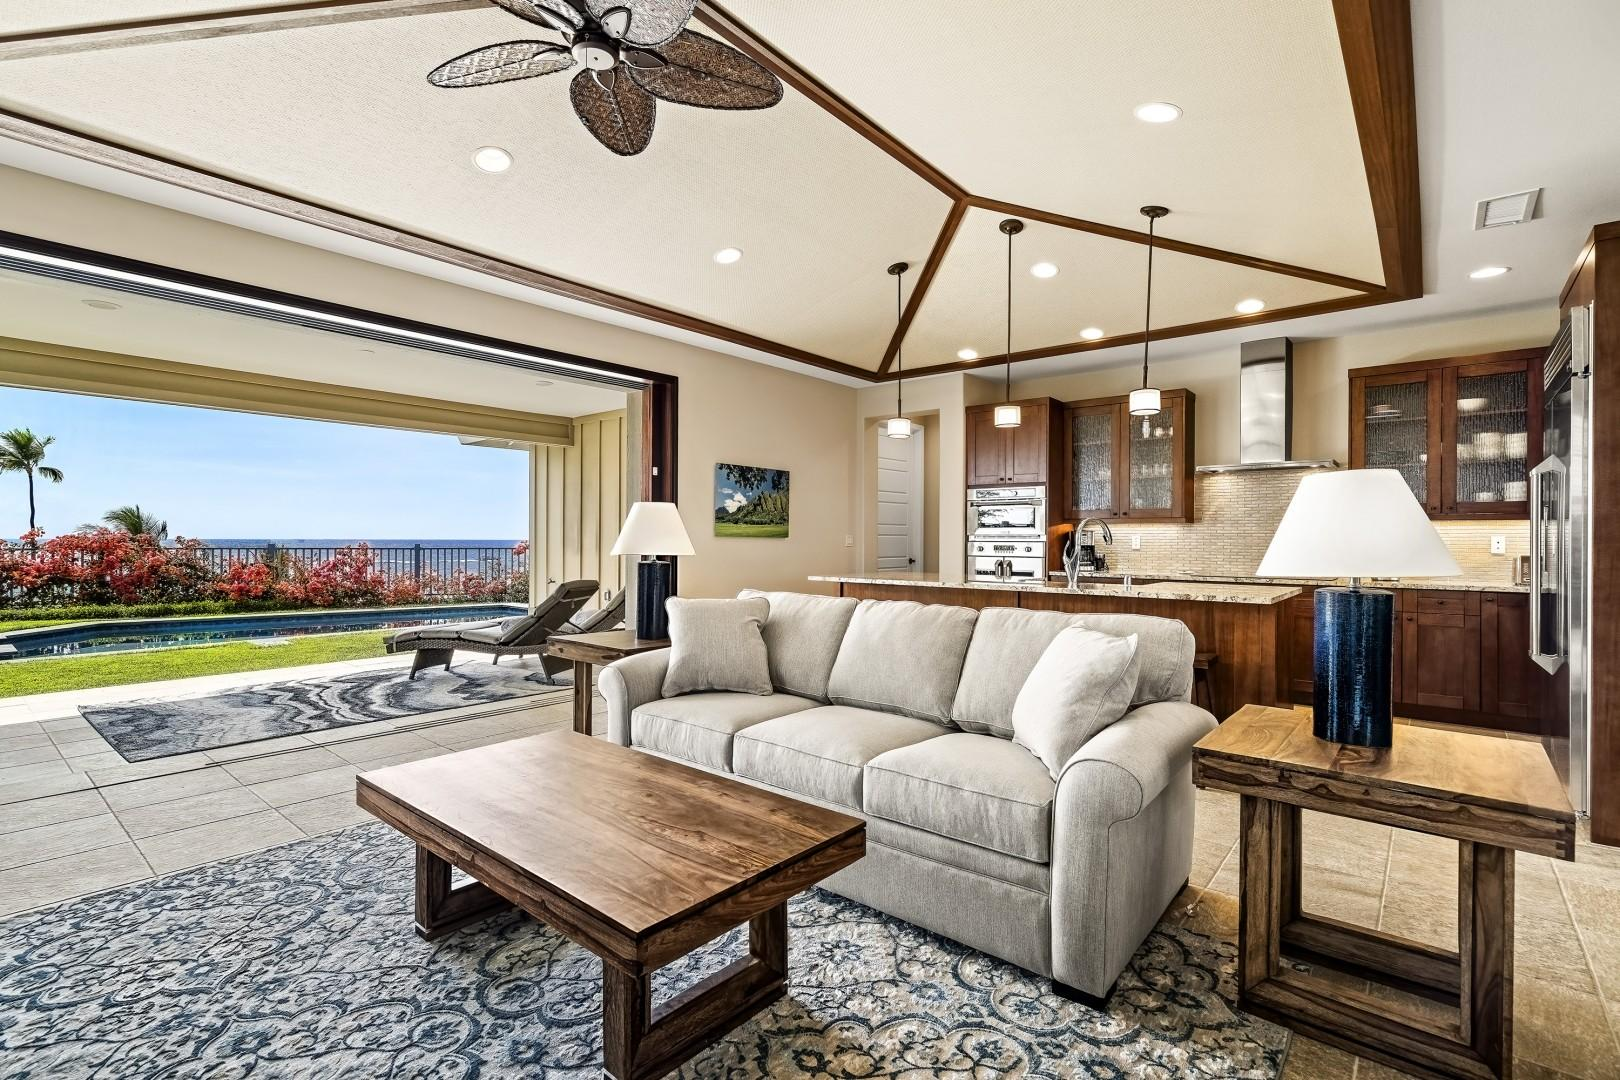 Open sightlines from the living area